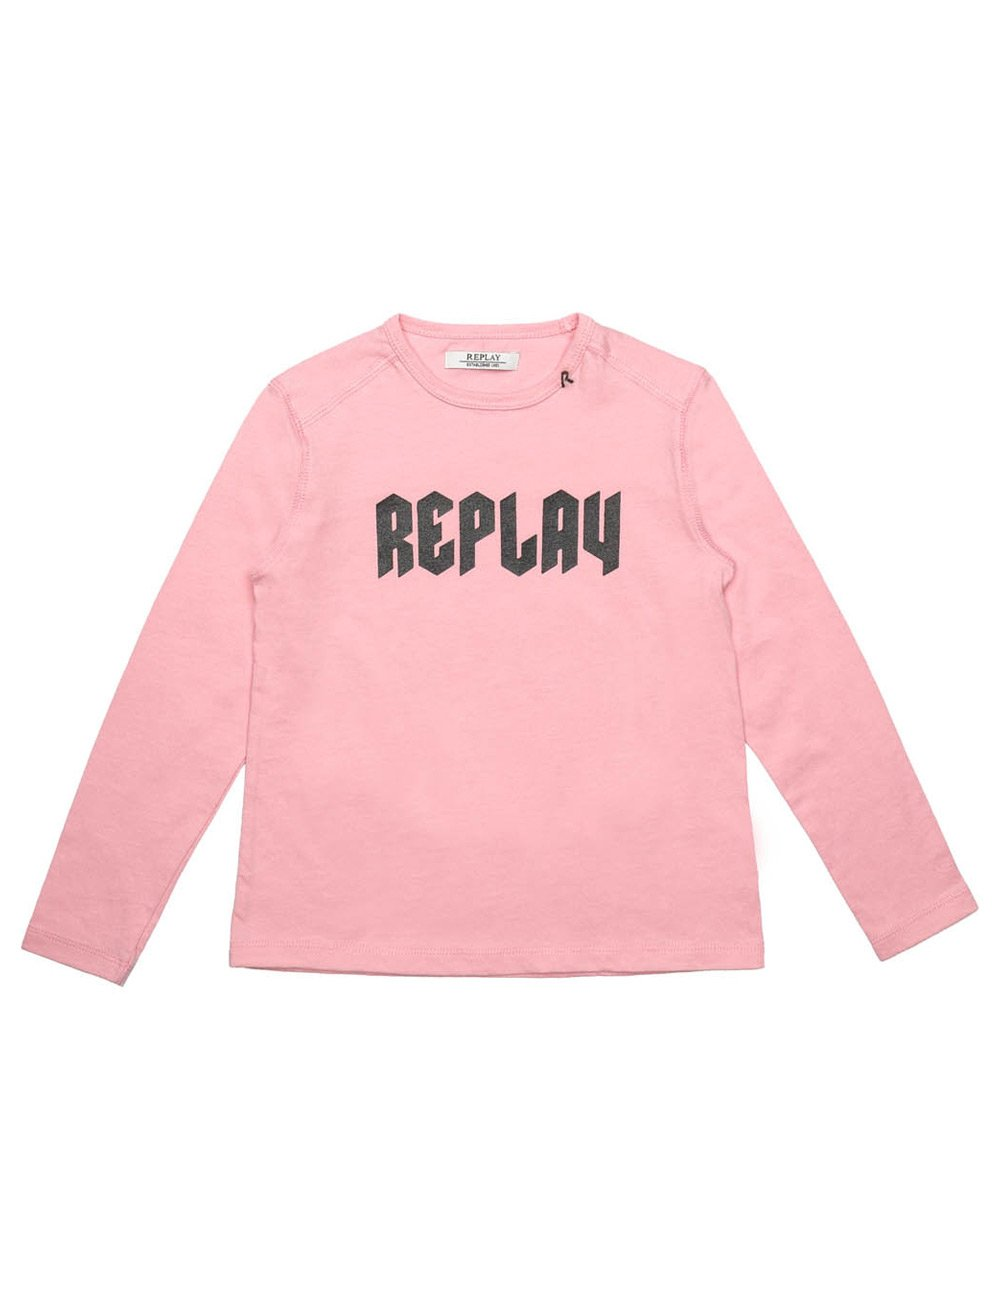 Replay Girls Pink Longsleeved T-Shirt With Print in Size 14 Years Pink